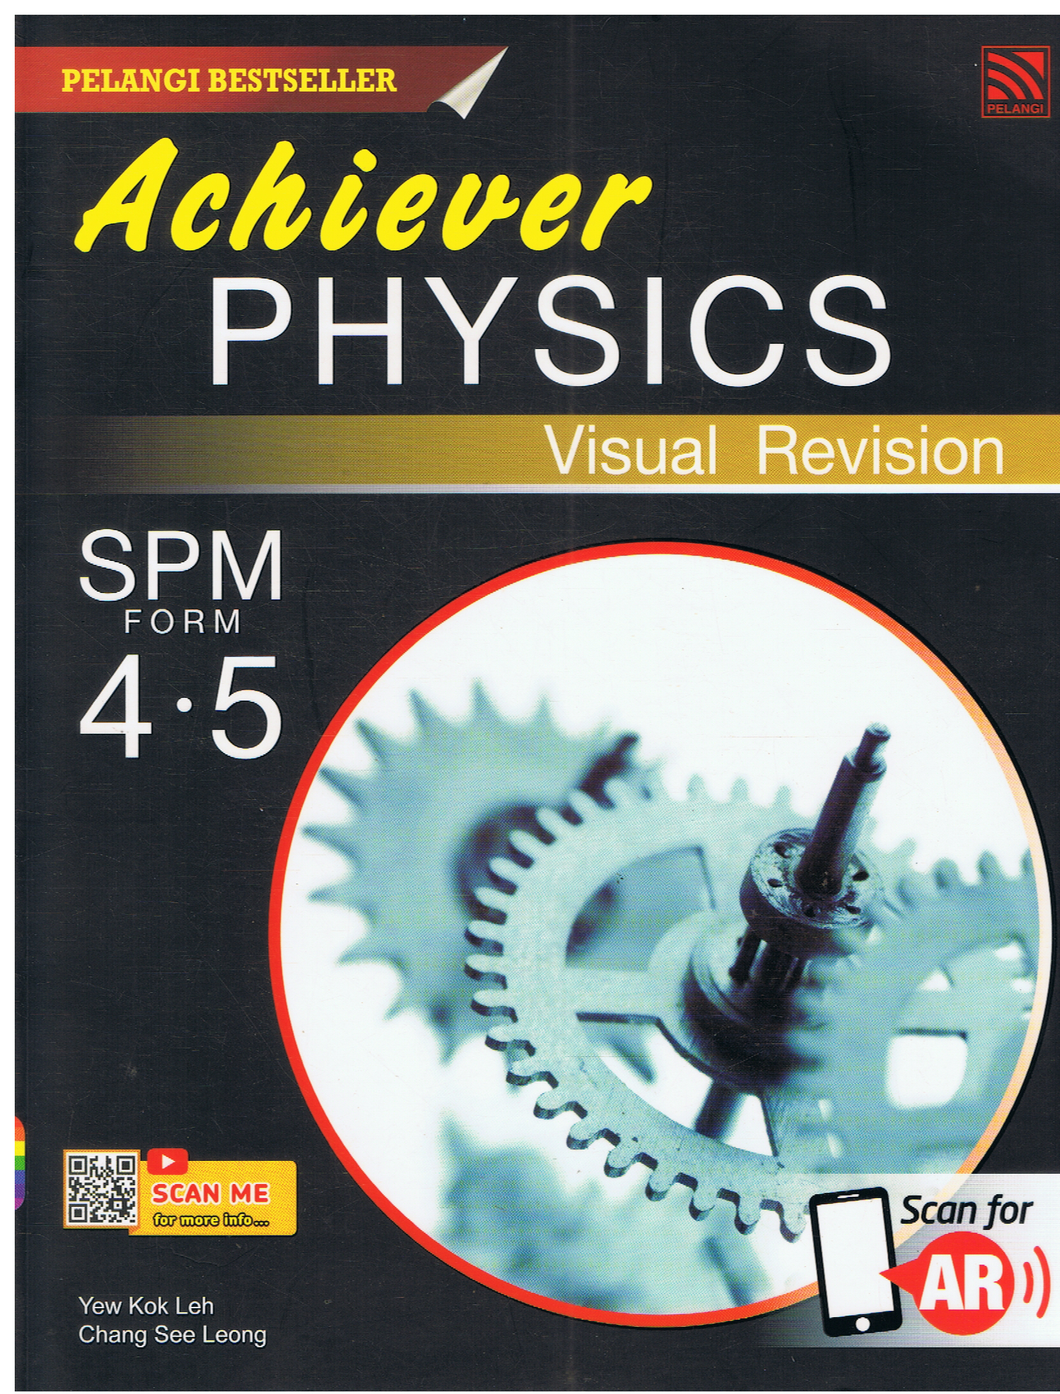 Achiever Physics Visual Revision SPM Form 4 & 5